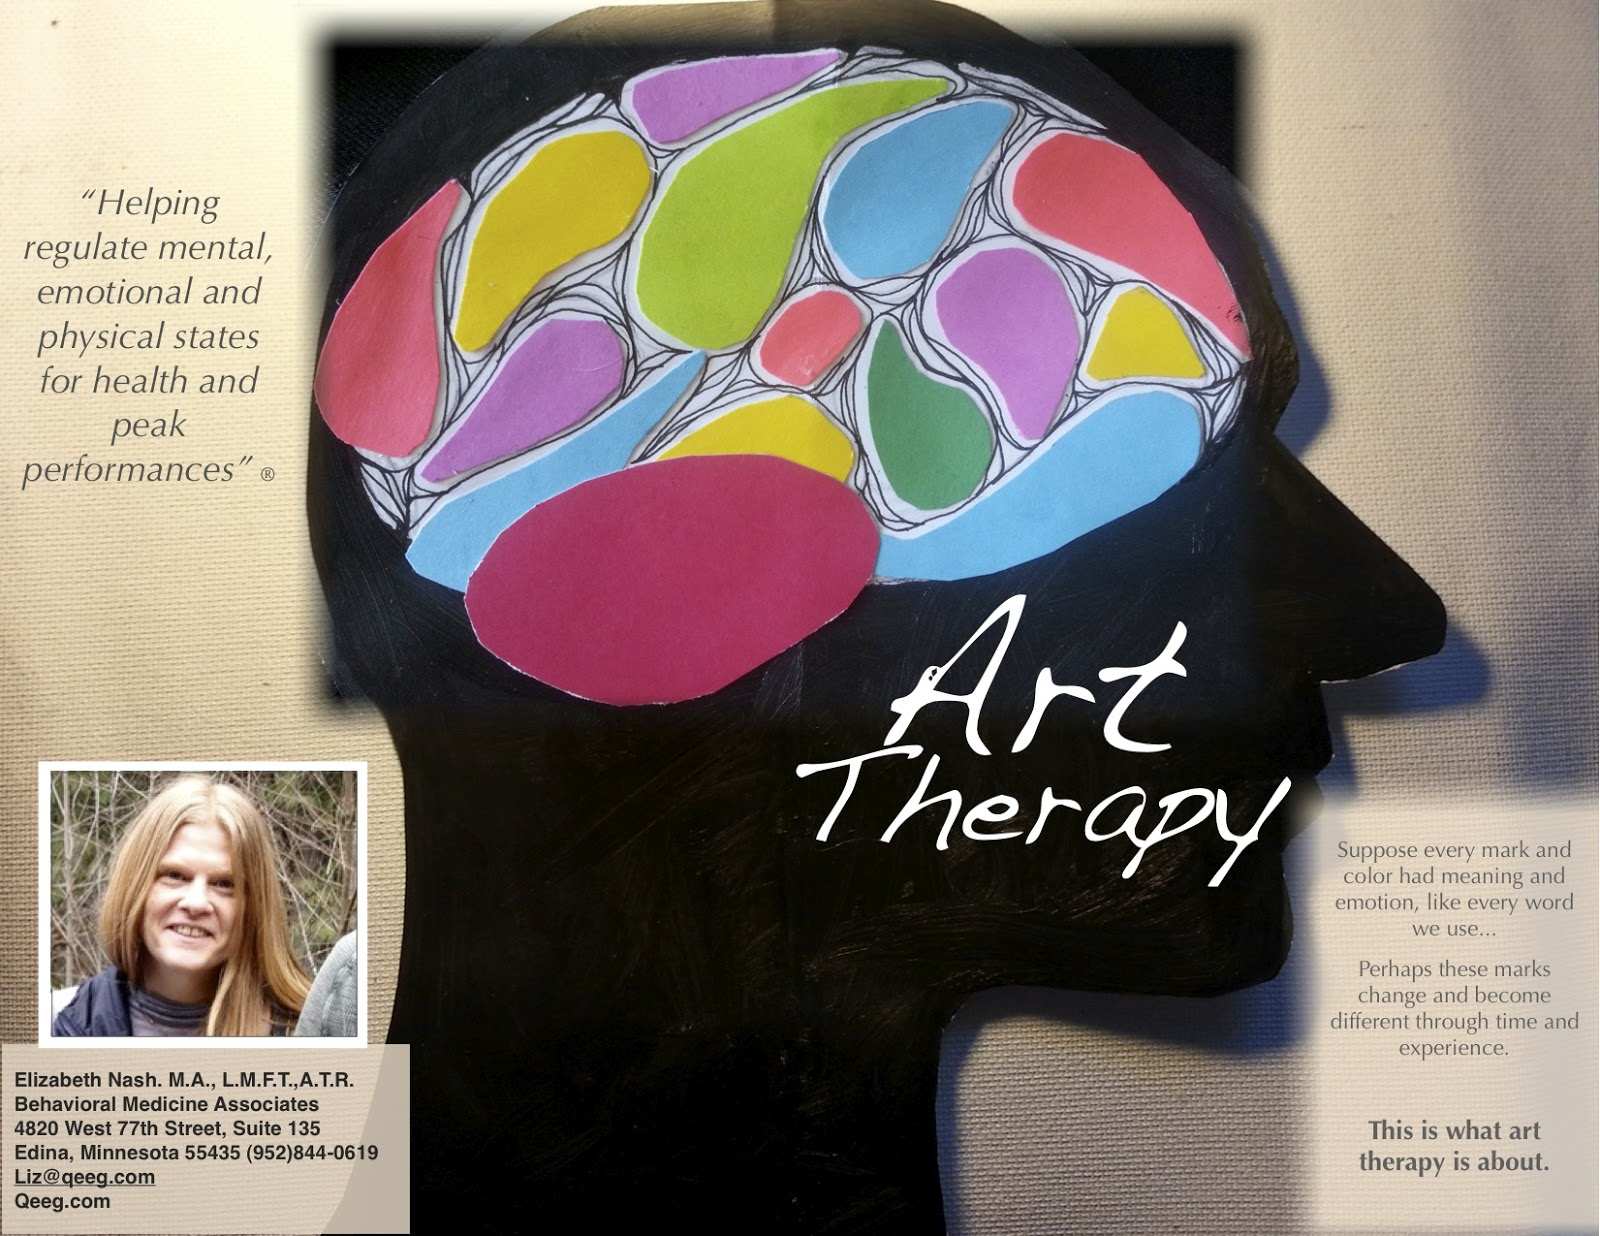 Therapeutic benefits provided by arts are recognized by scientists